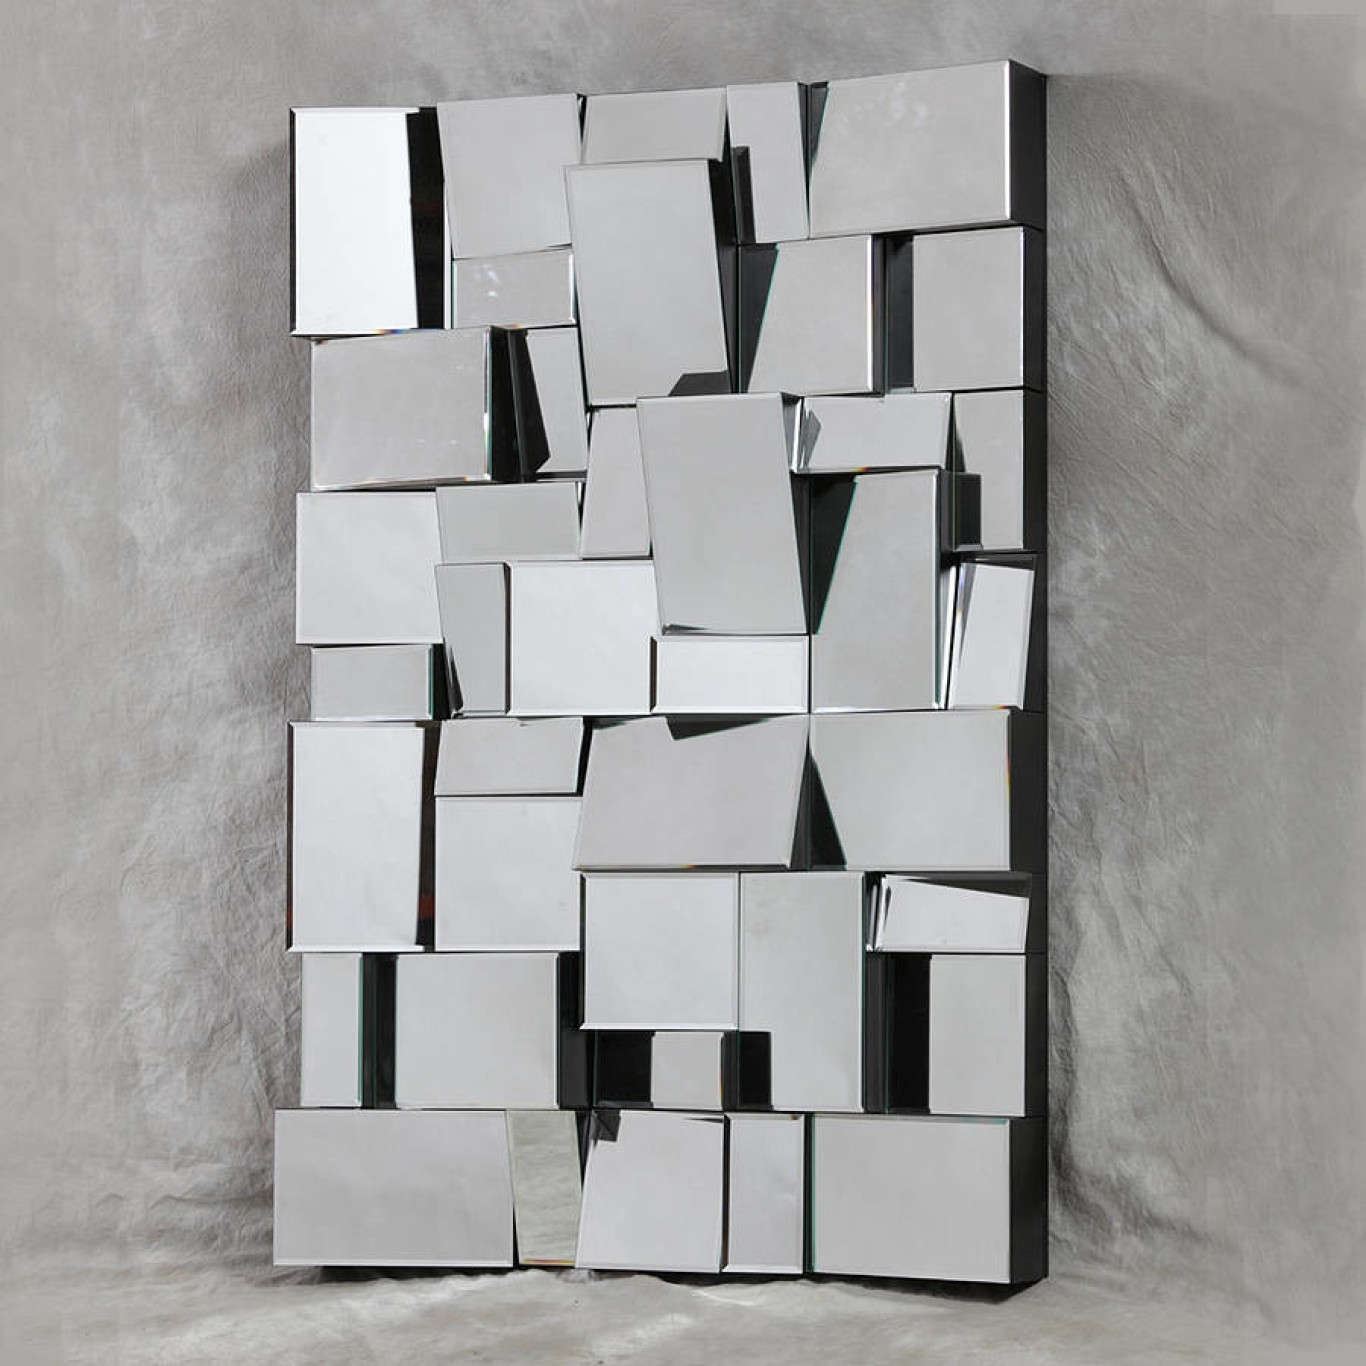 Mirrors As Wall Superb Mirrored Wall Art – Prix Dalle Beton Throughout Current Mirrored Wall Art (View 13 of 20)